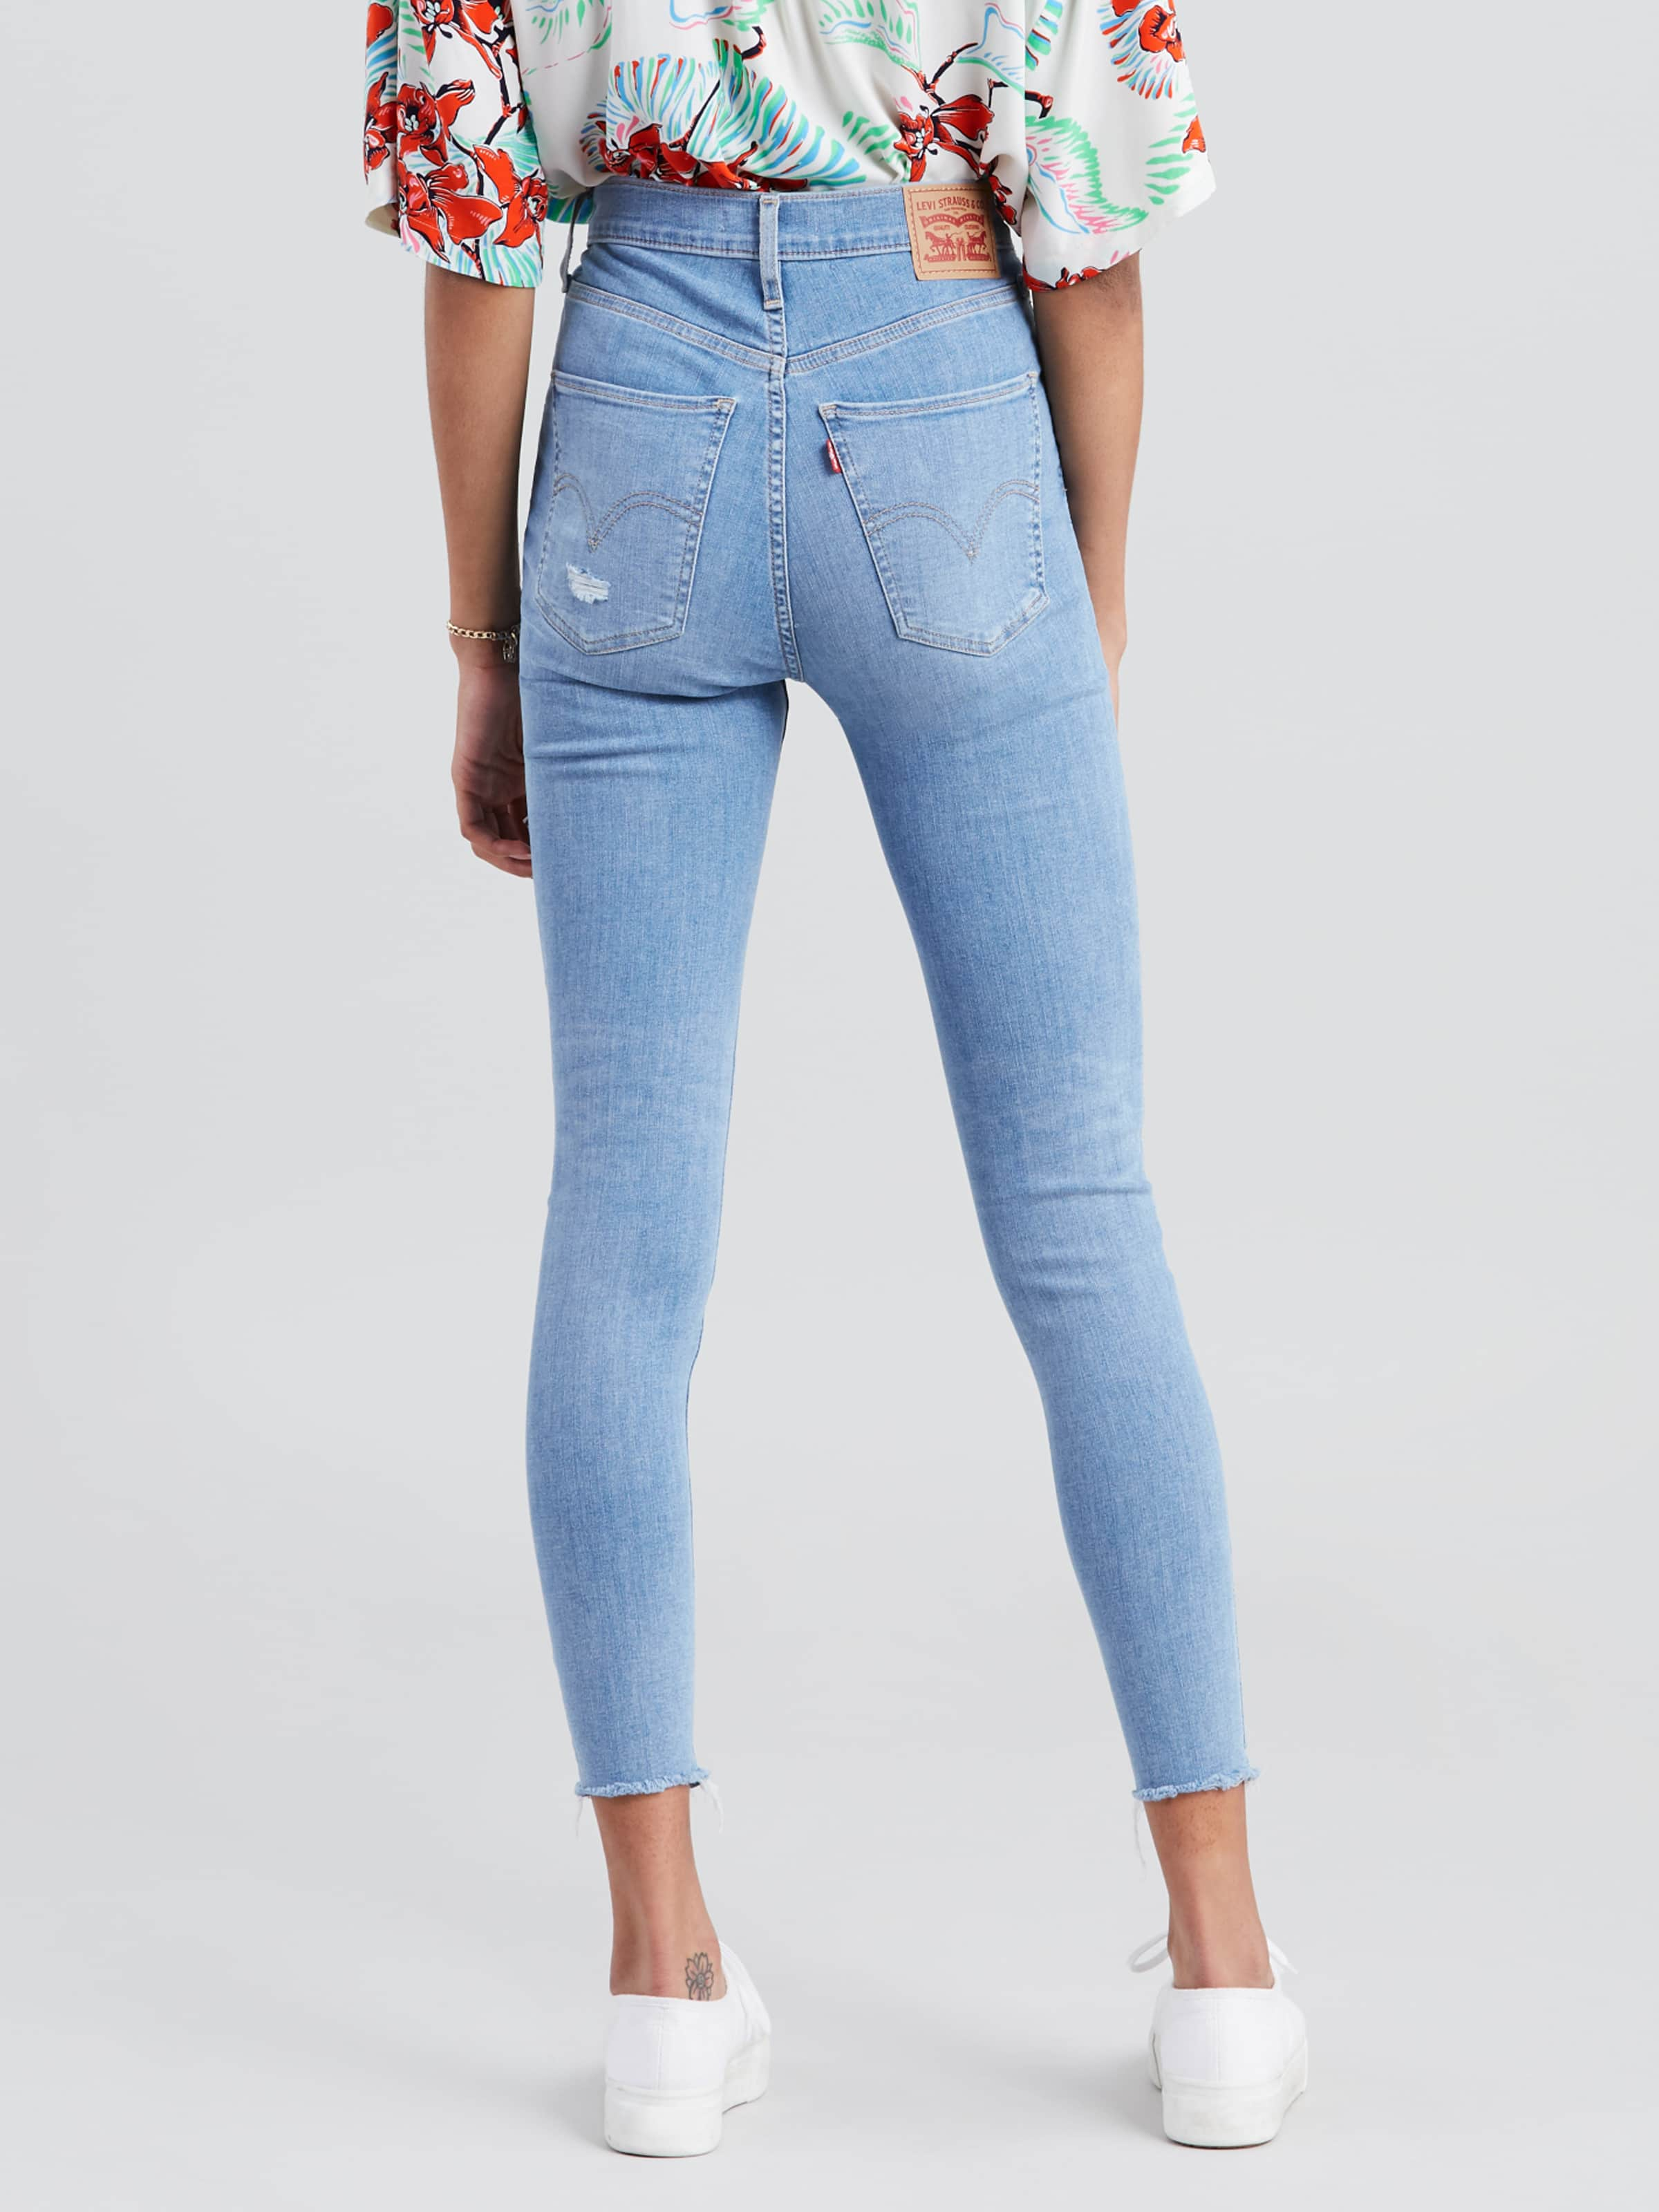 6a343c74722 ... Image for Levis Mile High Super Skinny In Bug Off from Just Jeans ...